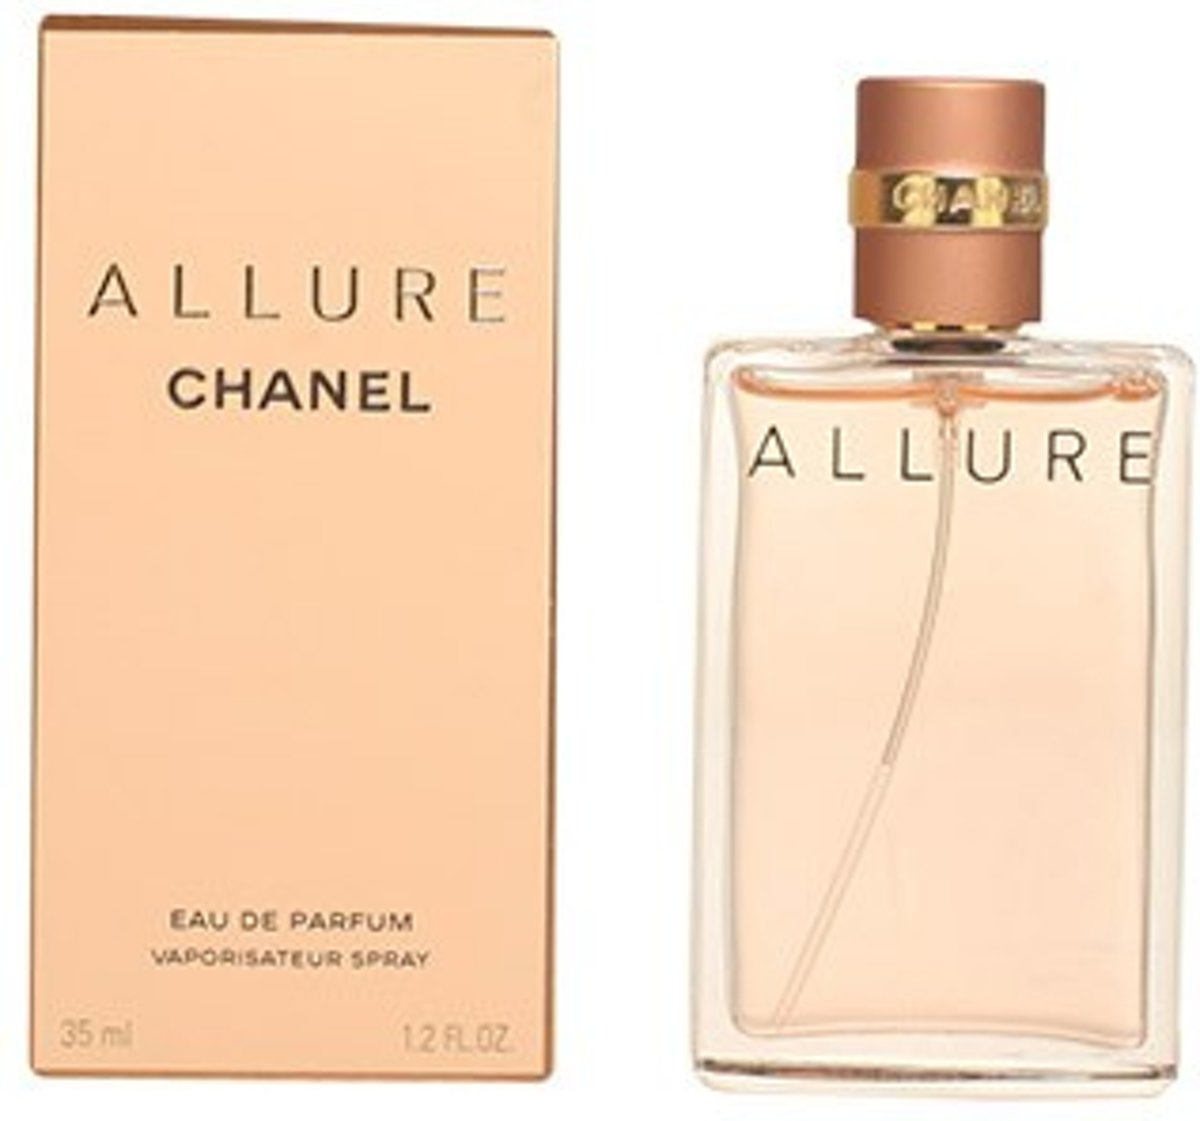 MULTI BUNDEL 2 stuks ALLURE Eau de Perfume Spray 35 ml